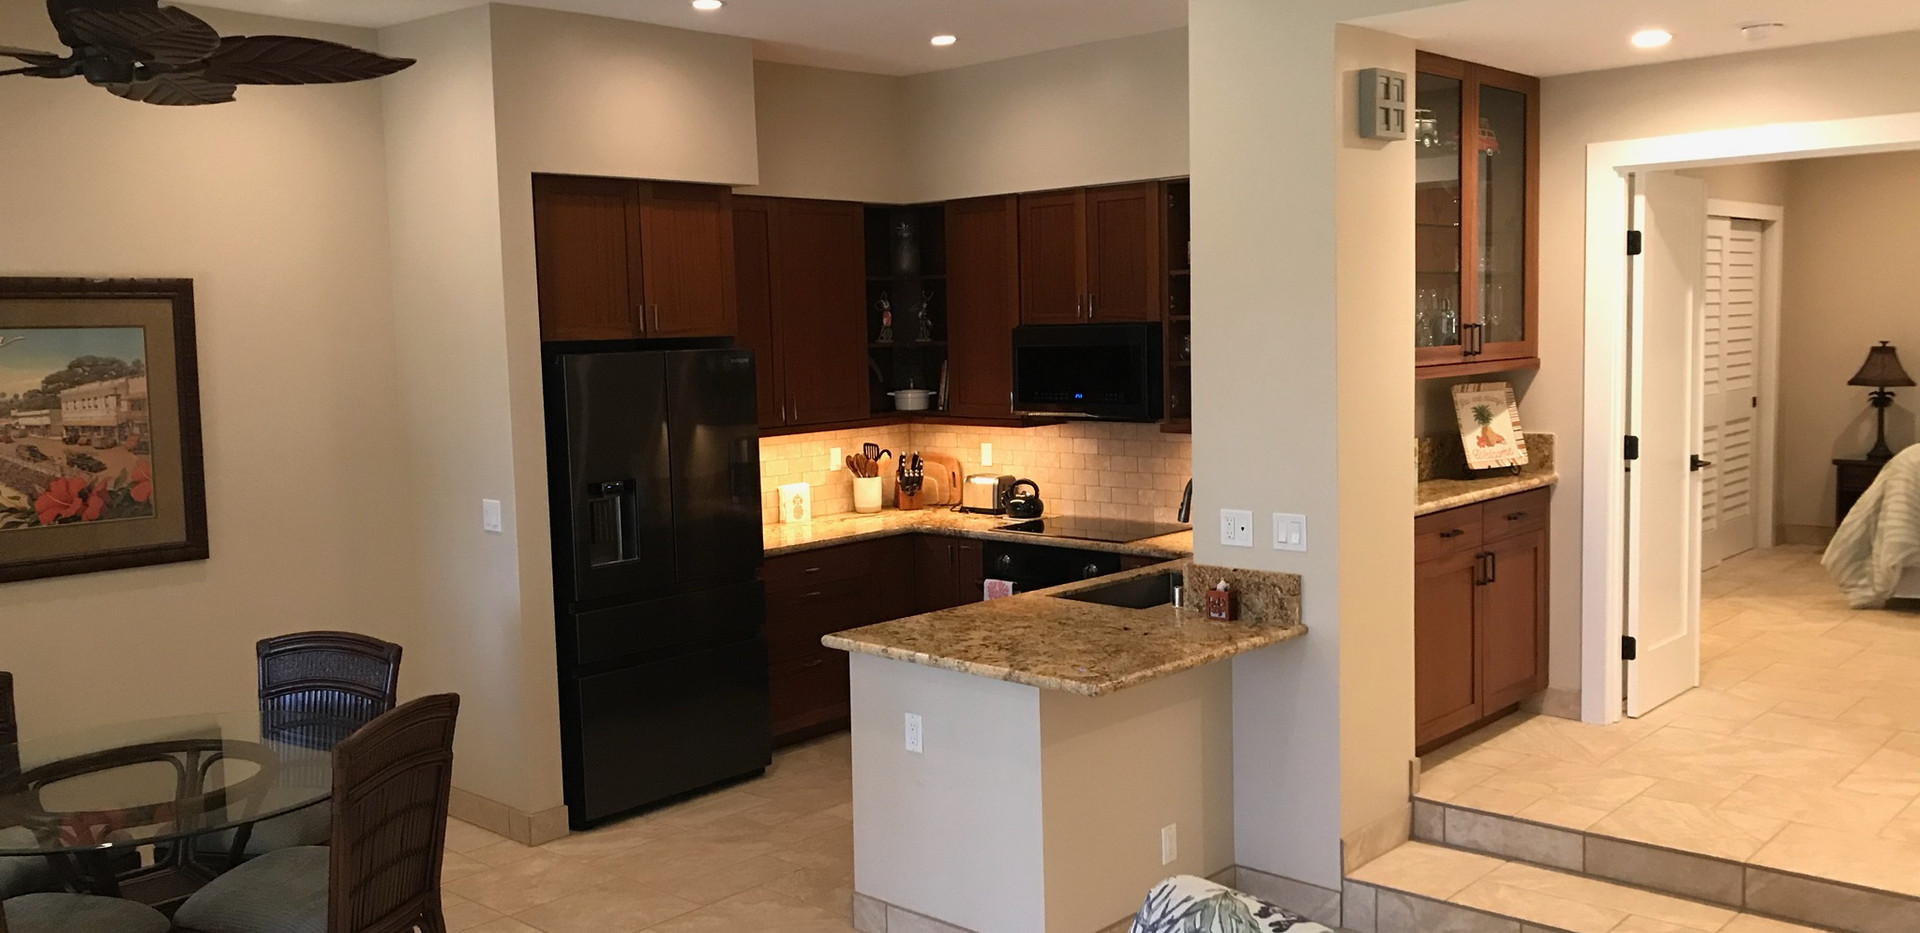 Living/Dining/Kitchen - After